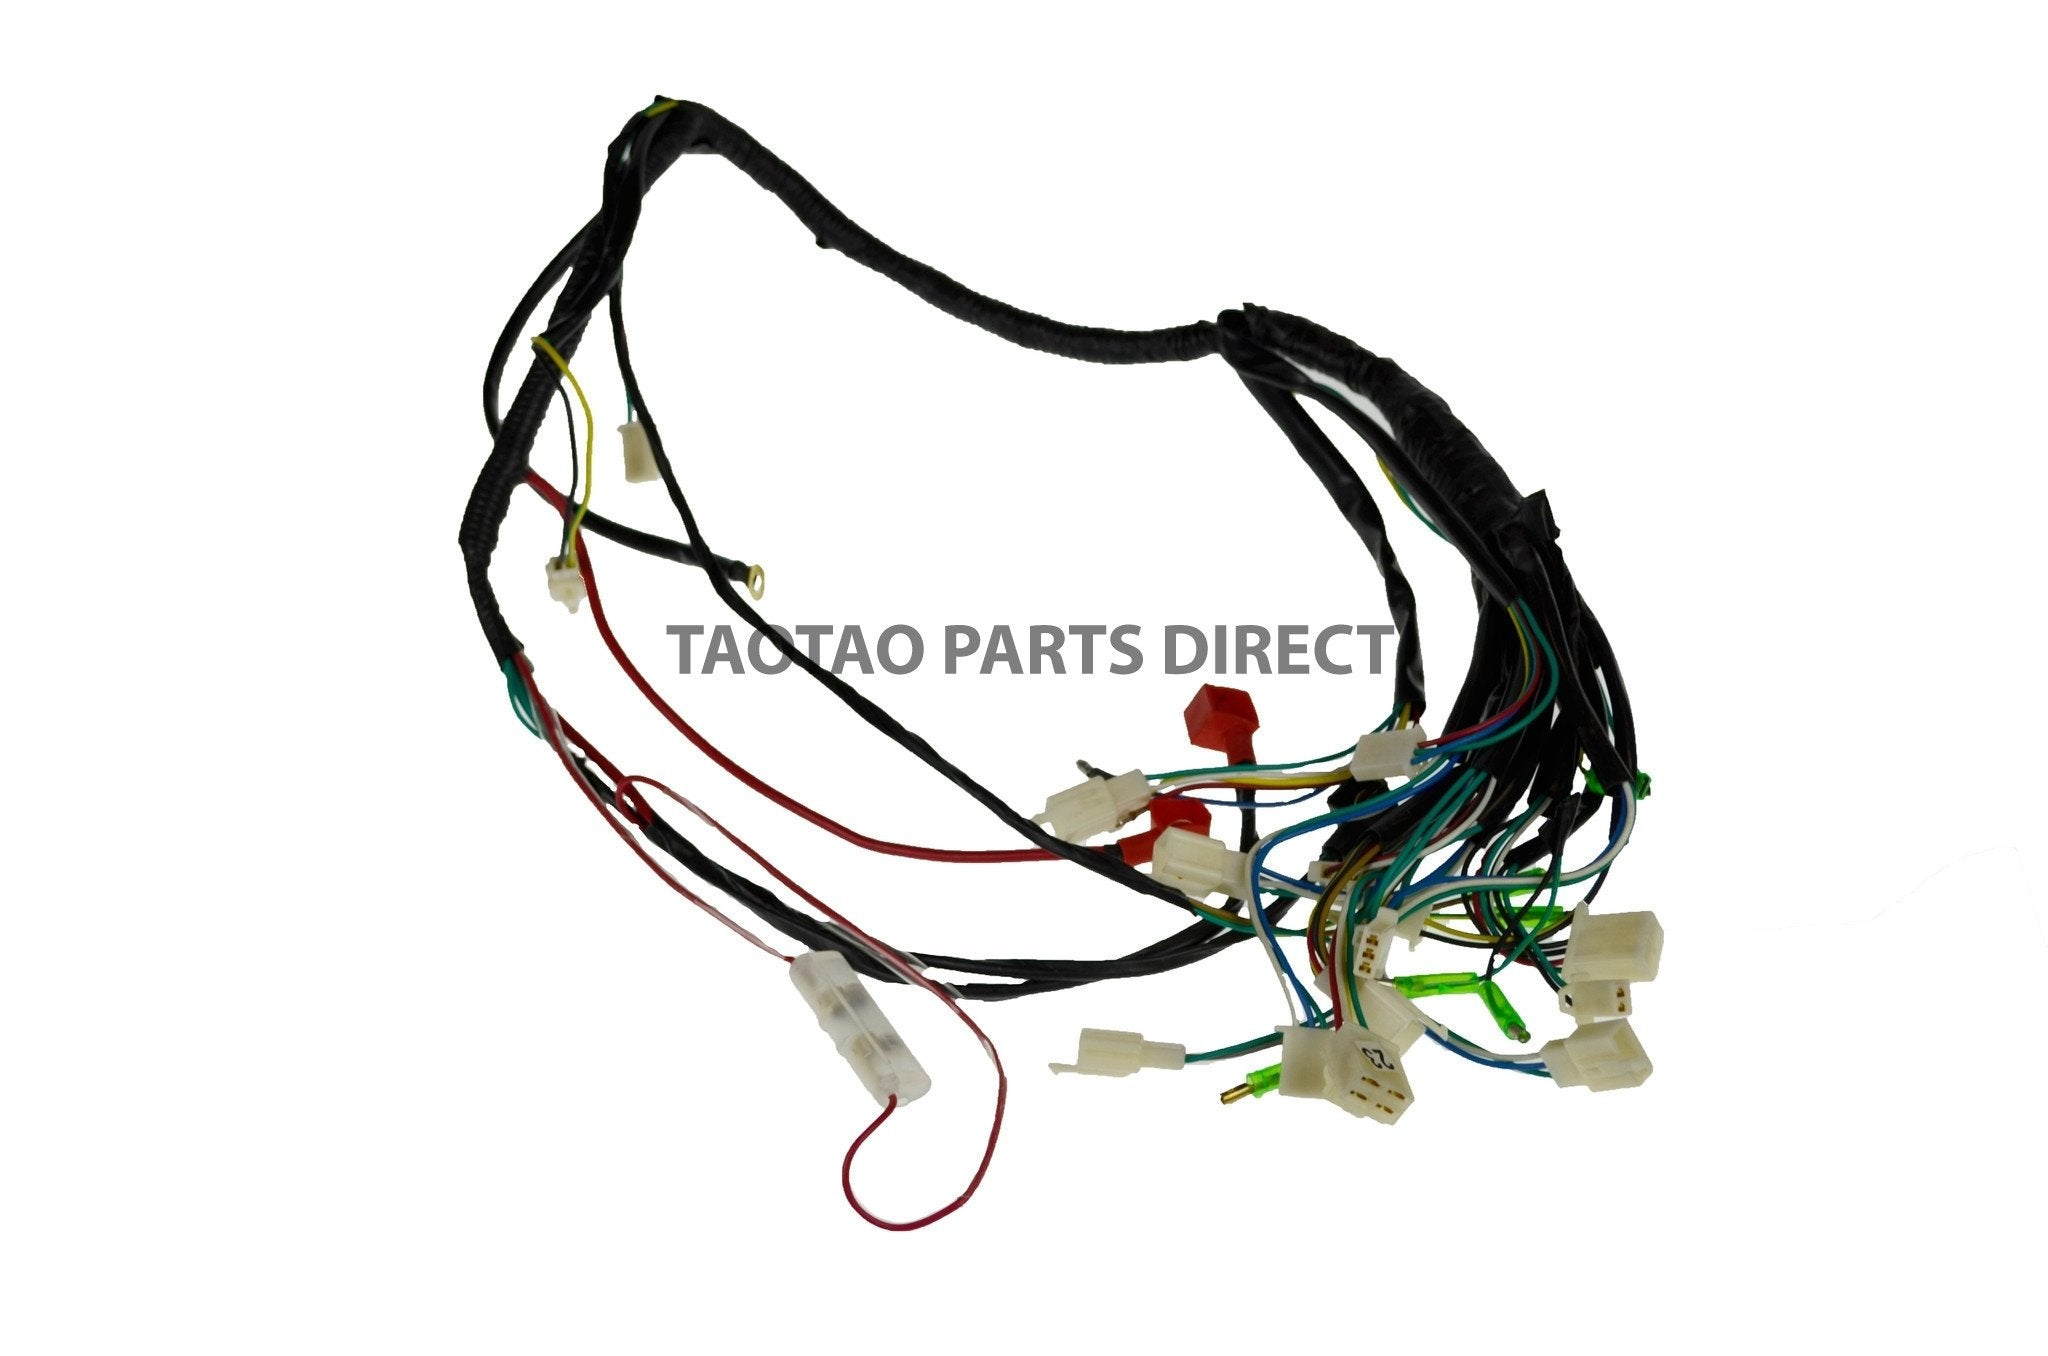 Ata150d Wire Harness 23 Taotao Parts Direct 125cc Atv Wiring